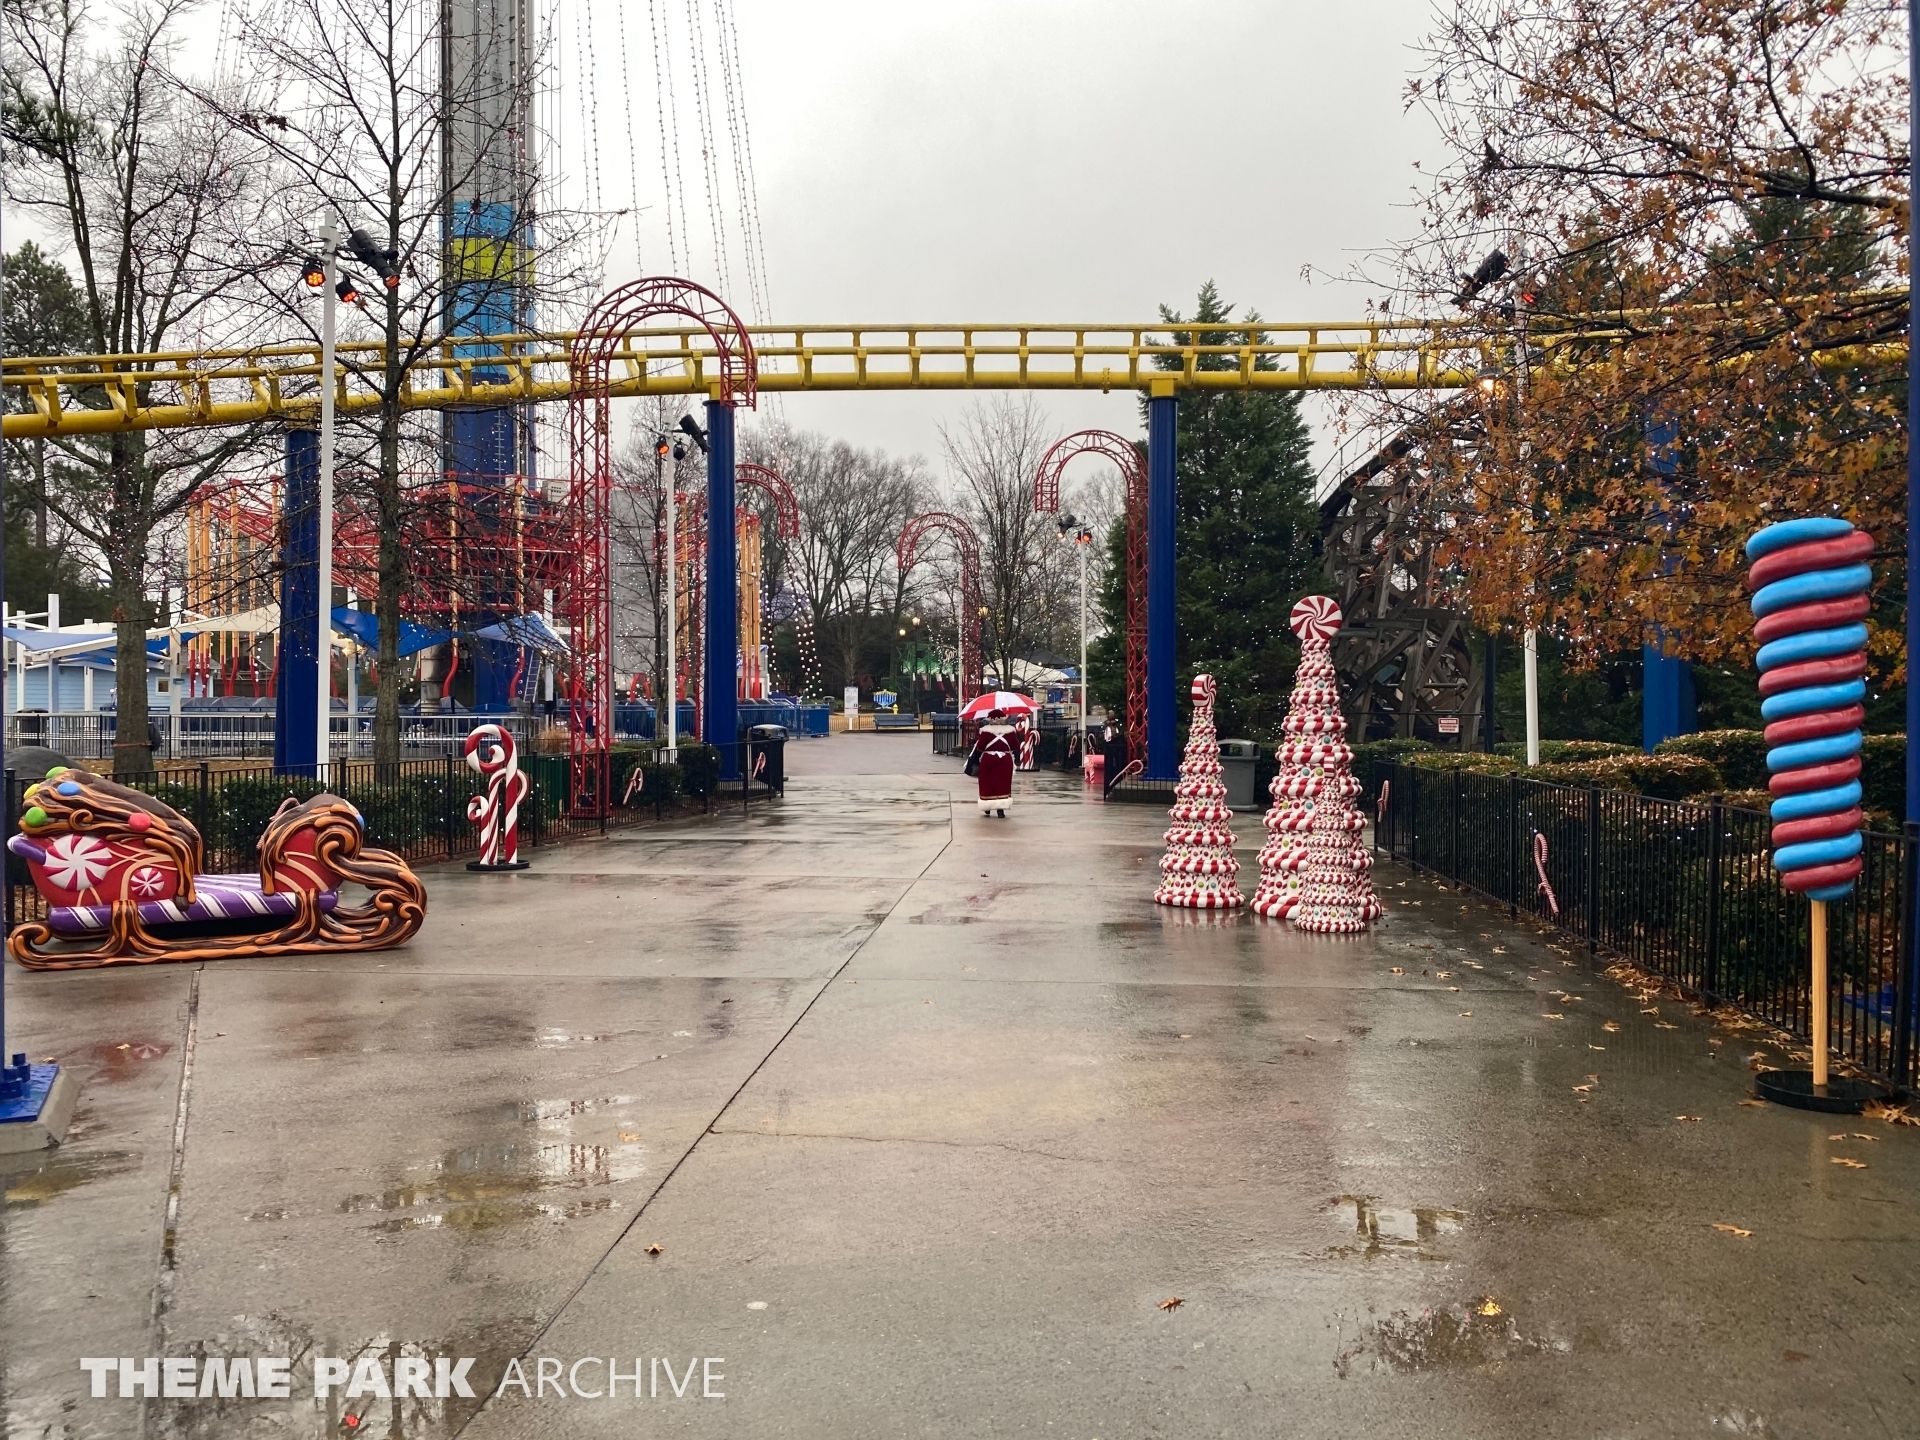 Winterfest at Carowinds